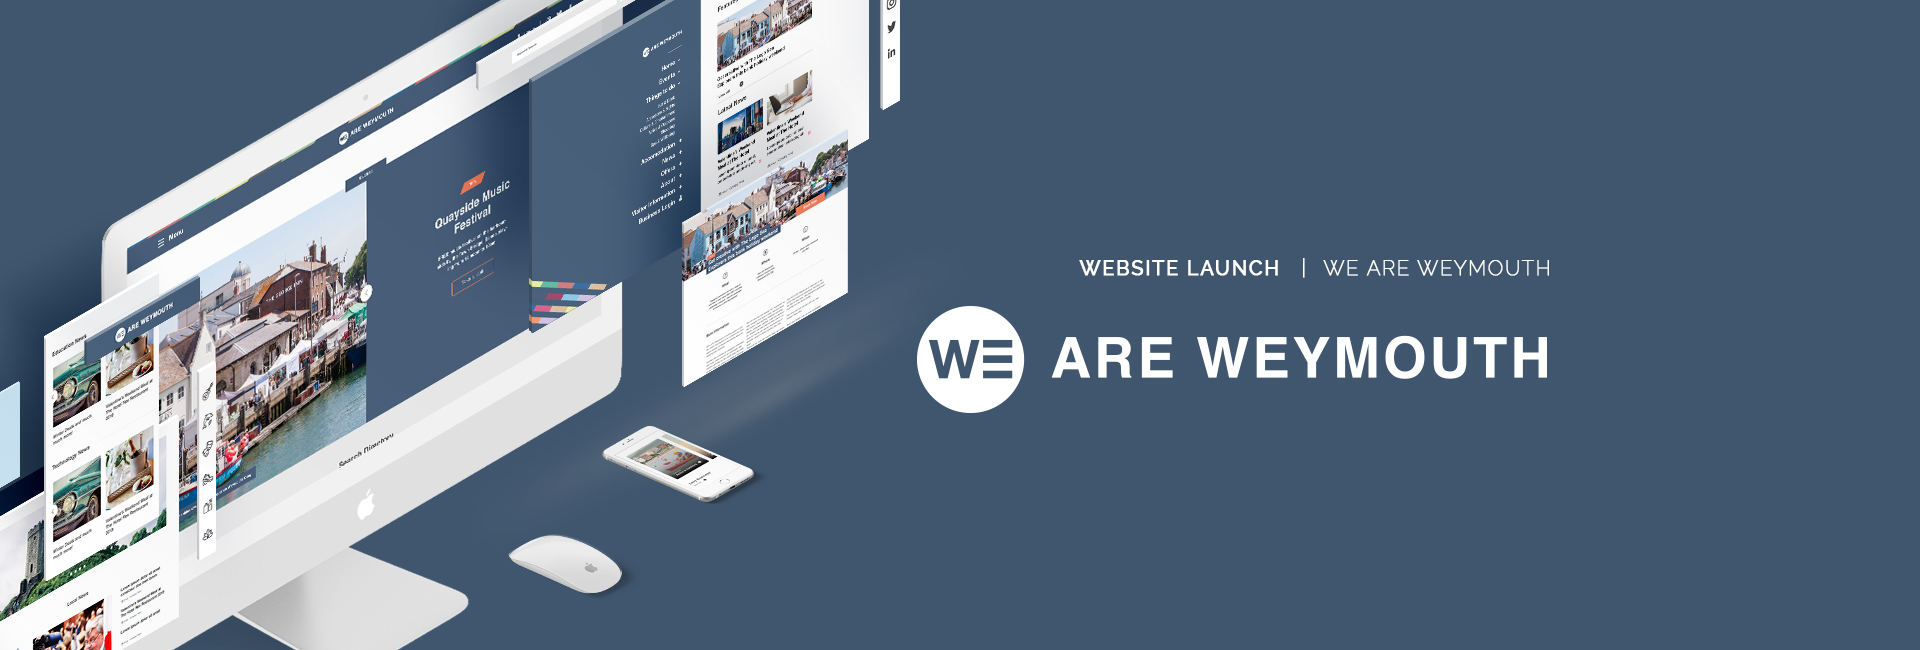 Digital Storm launch the brand new We are Weymouth tourist information website.